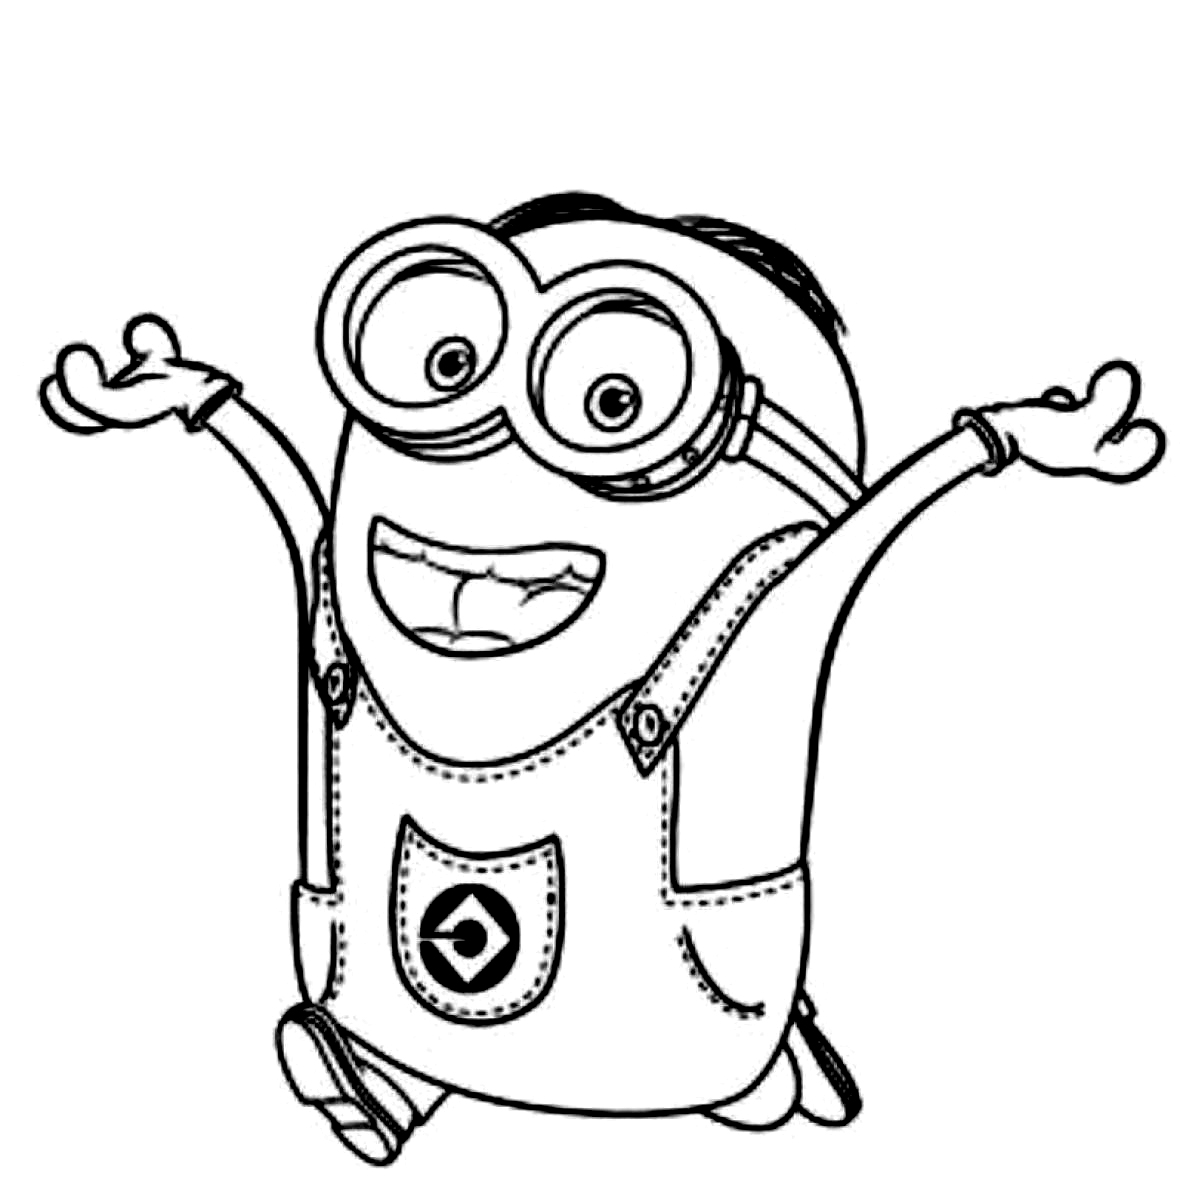 free despicable me coloring pages despicable me 3 coloring pages to download and print for free pages coloring me despicable free